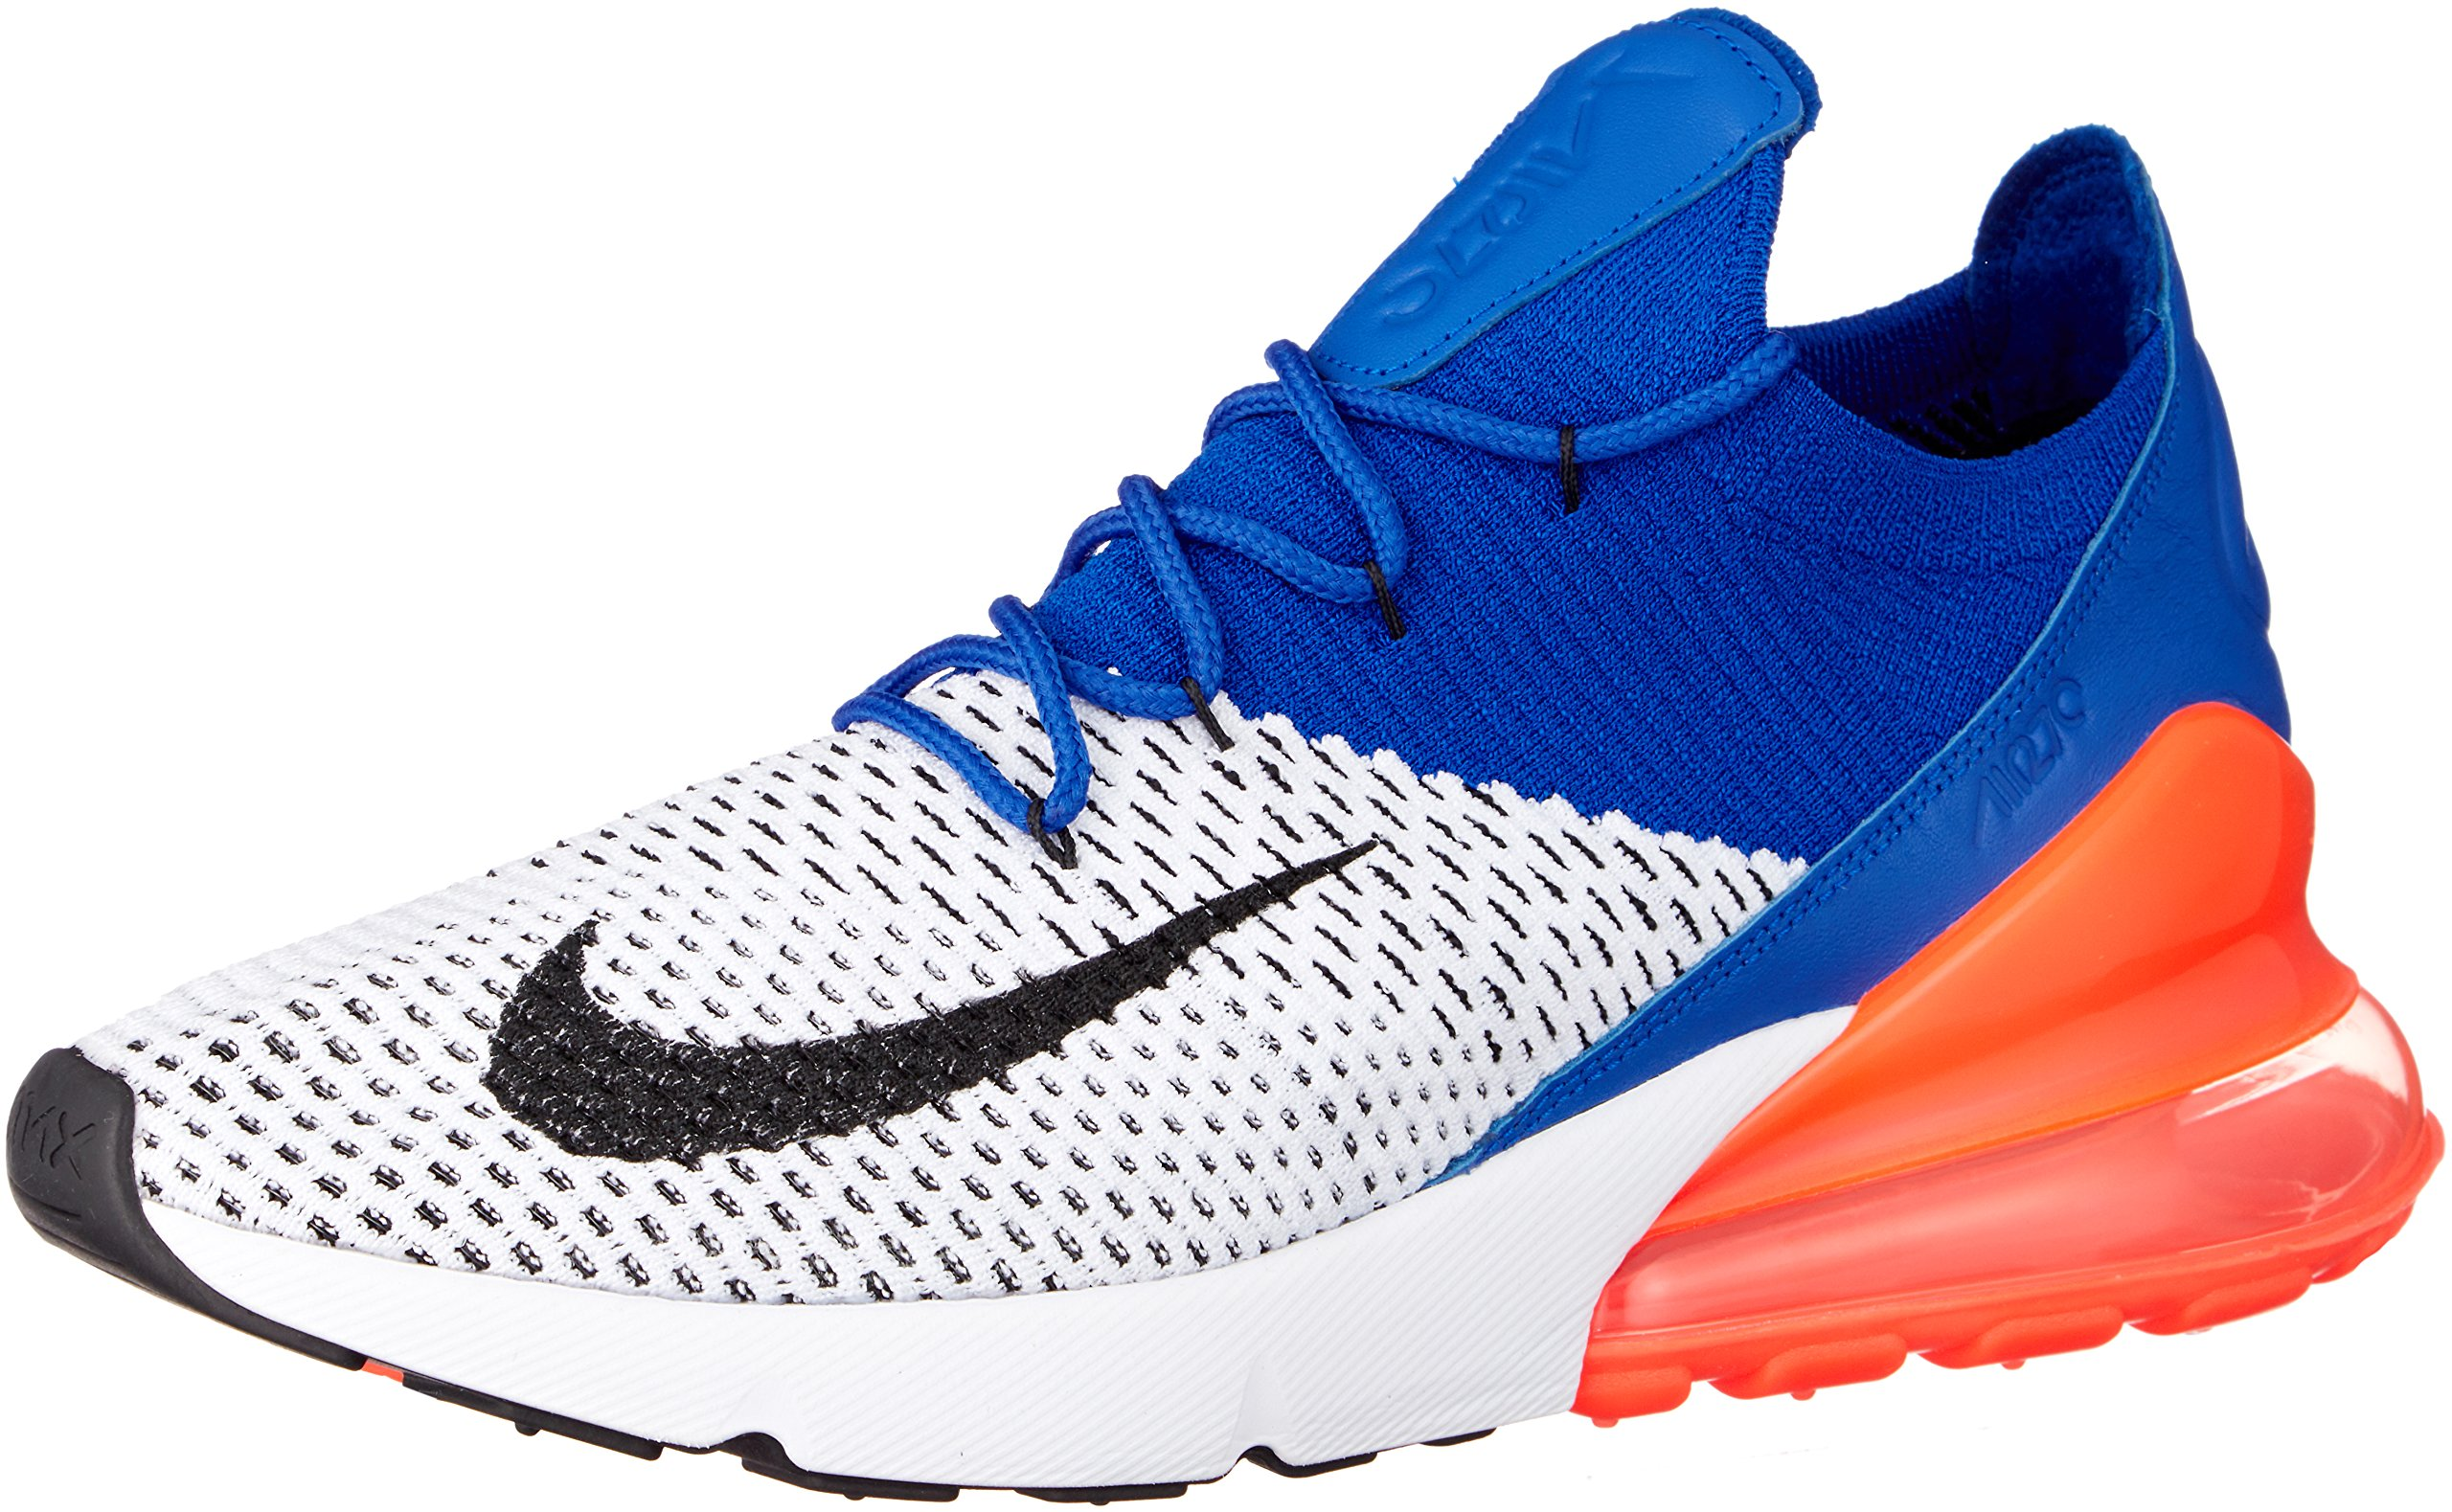 Nike Air Max 270 Flyknit Mens Running Trainers AO1023 Sneakers Shoes (UK 10 US 11 EU 45, White Racer Blue 101)